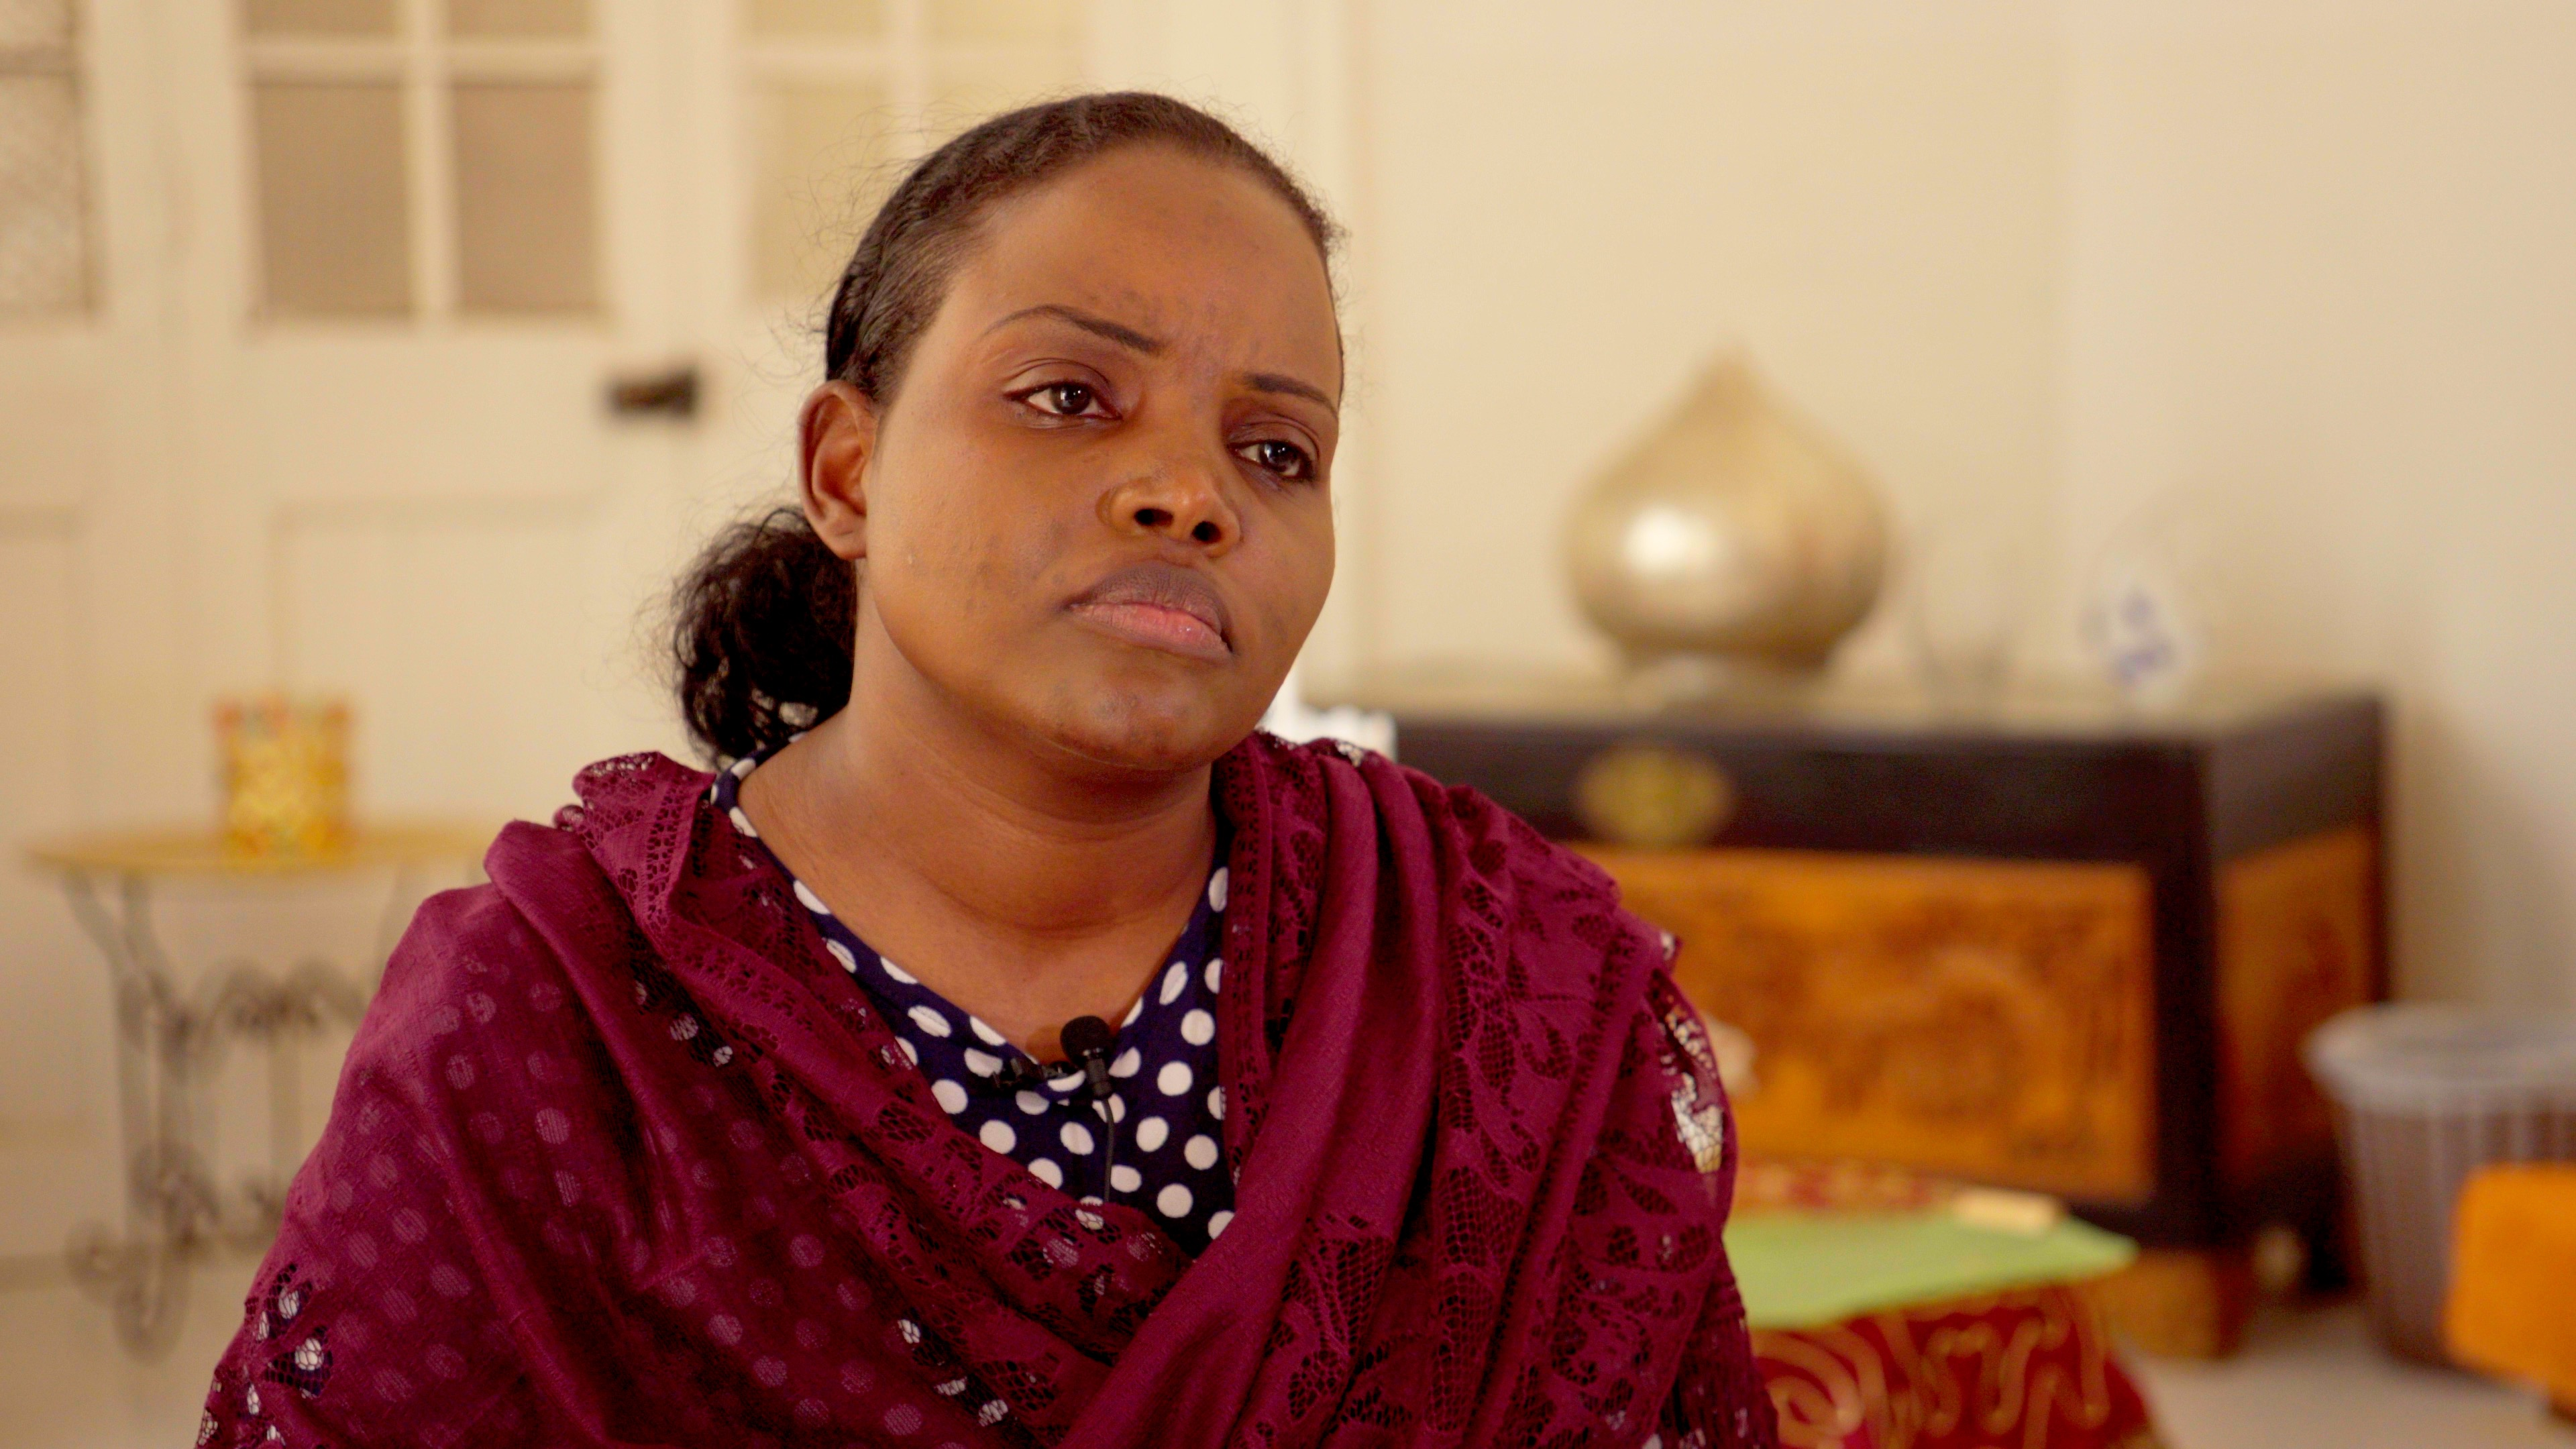 Annal Rape rape and sudan's revolution: 'they were crying and screaming